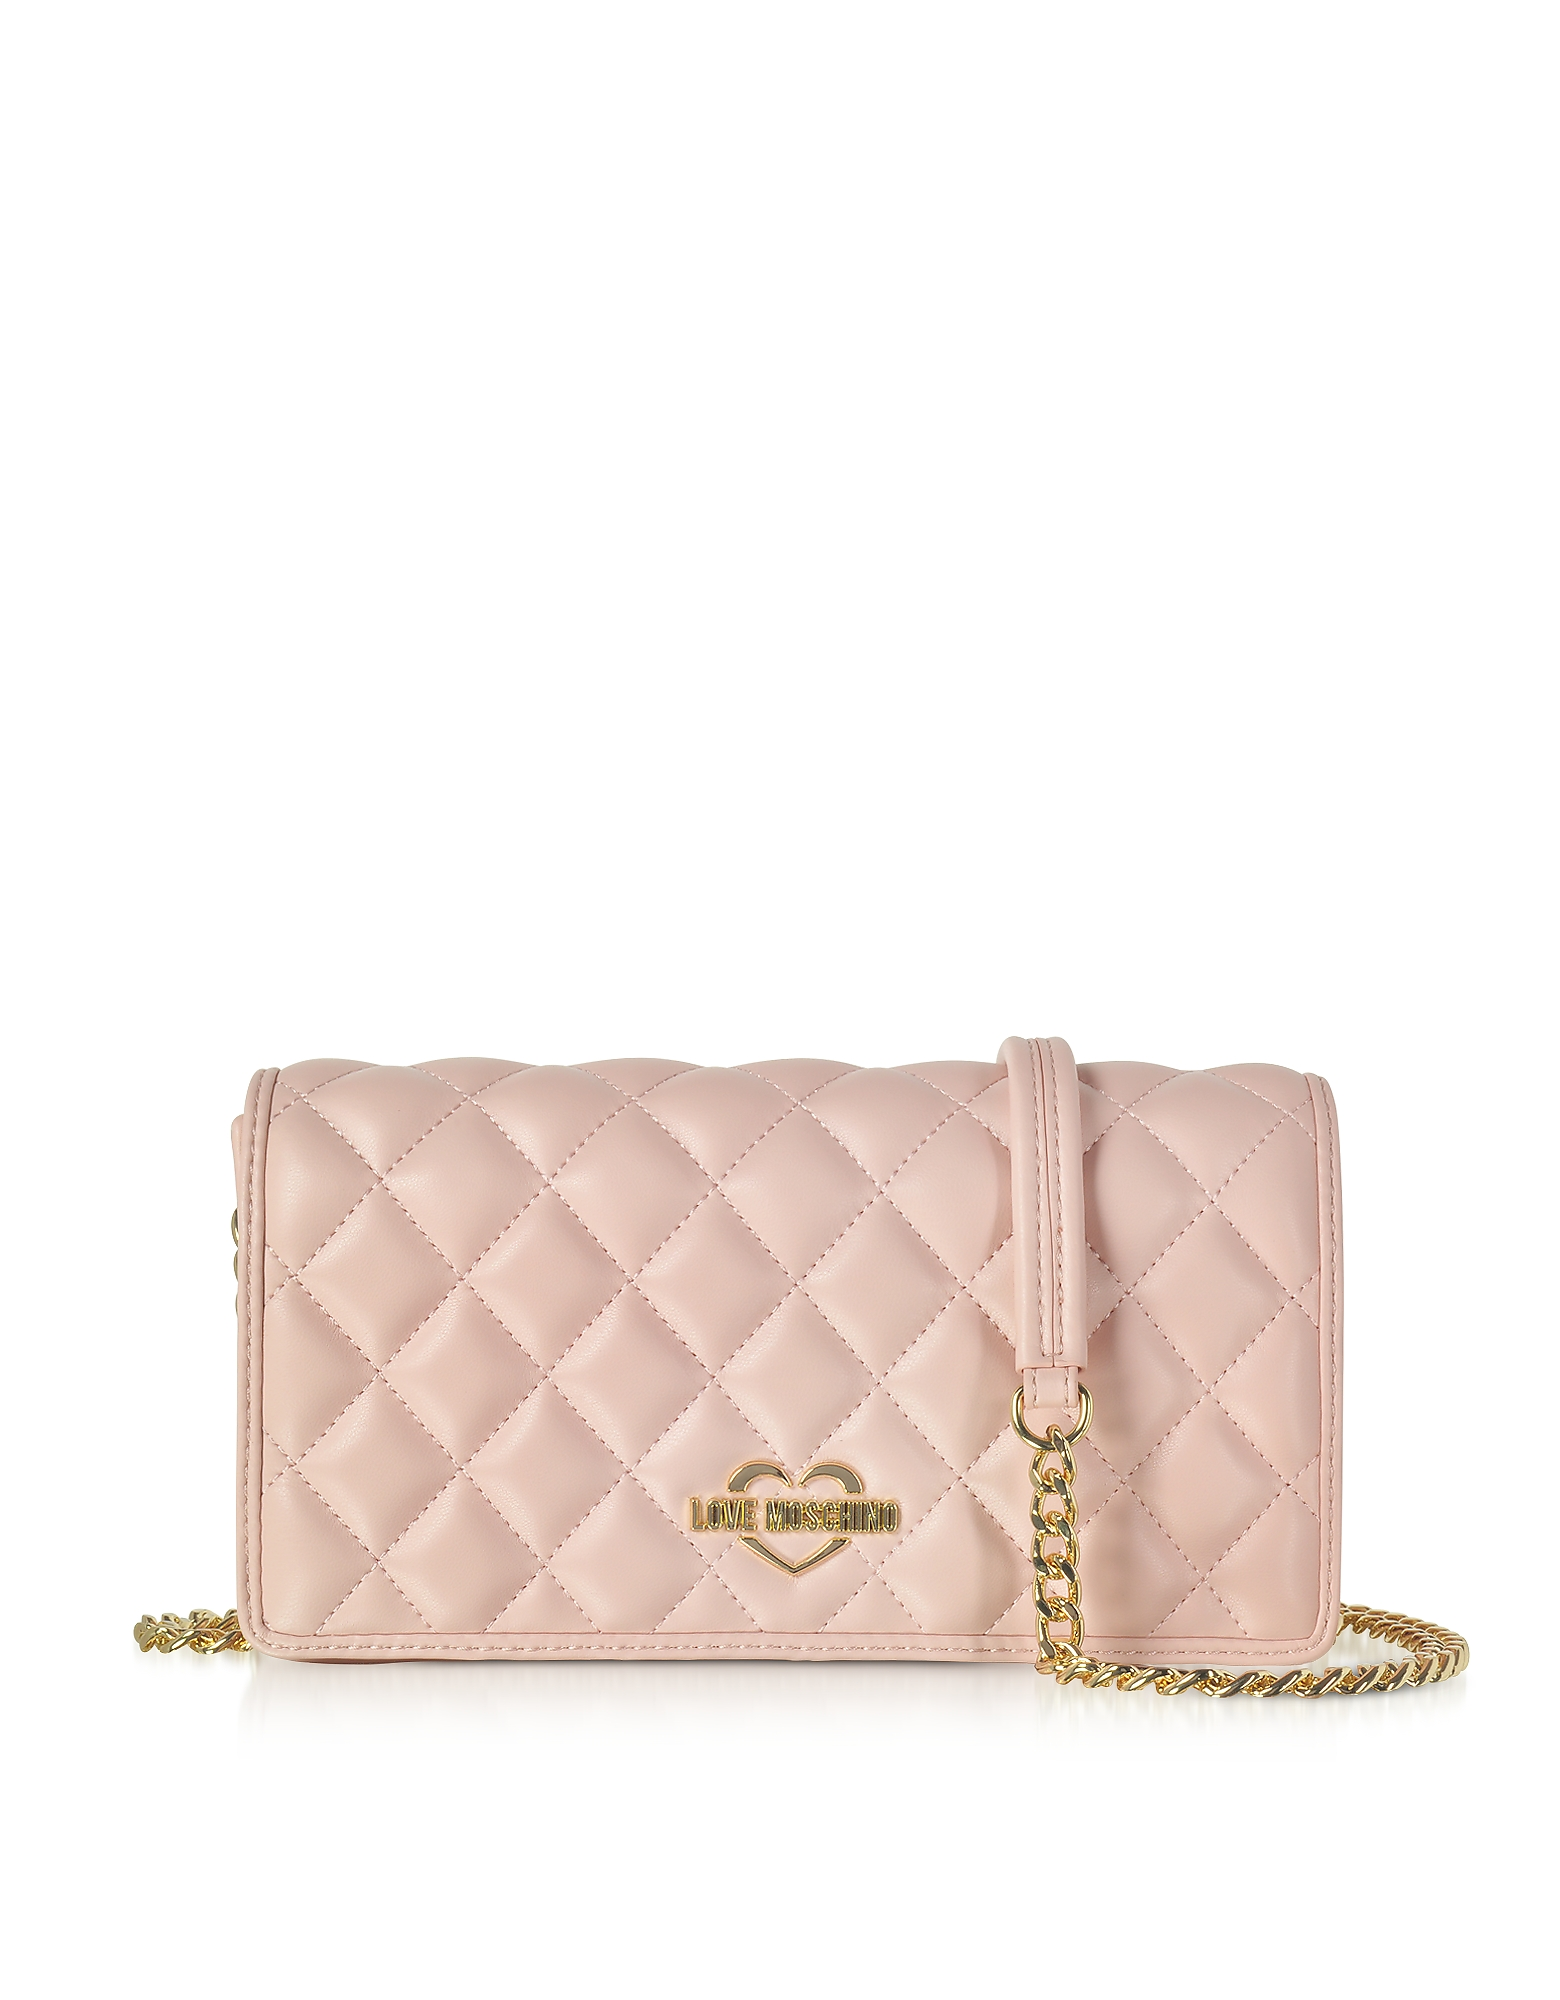 Love Moschino Handbags, Pink Superquilted Eco-Leather Clutch w/Shoulder Strap